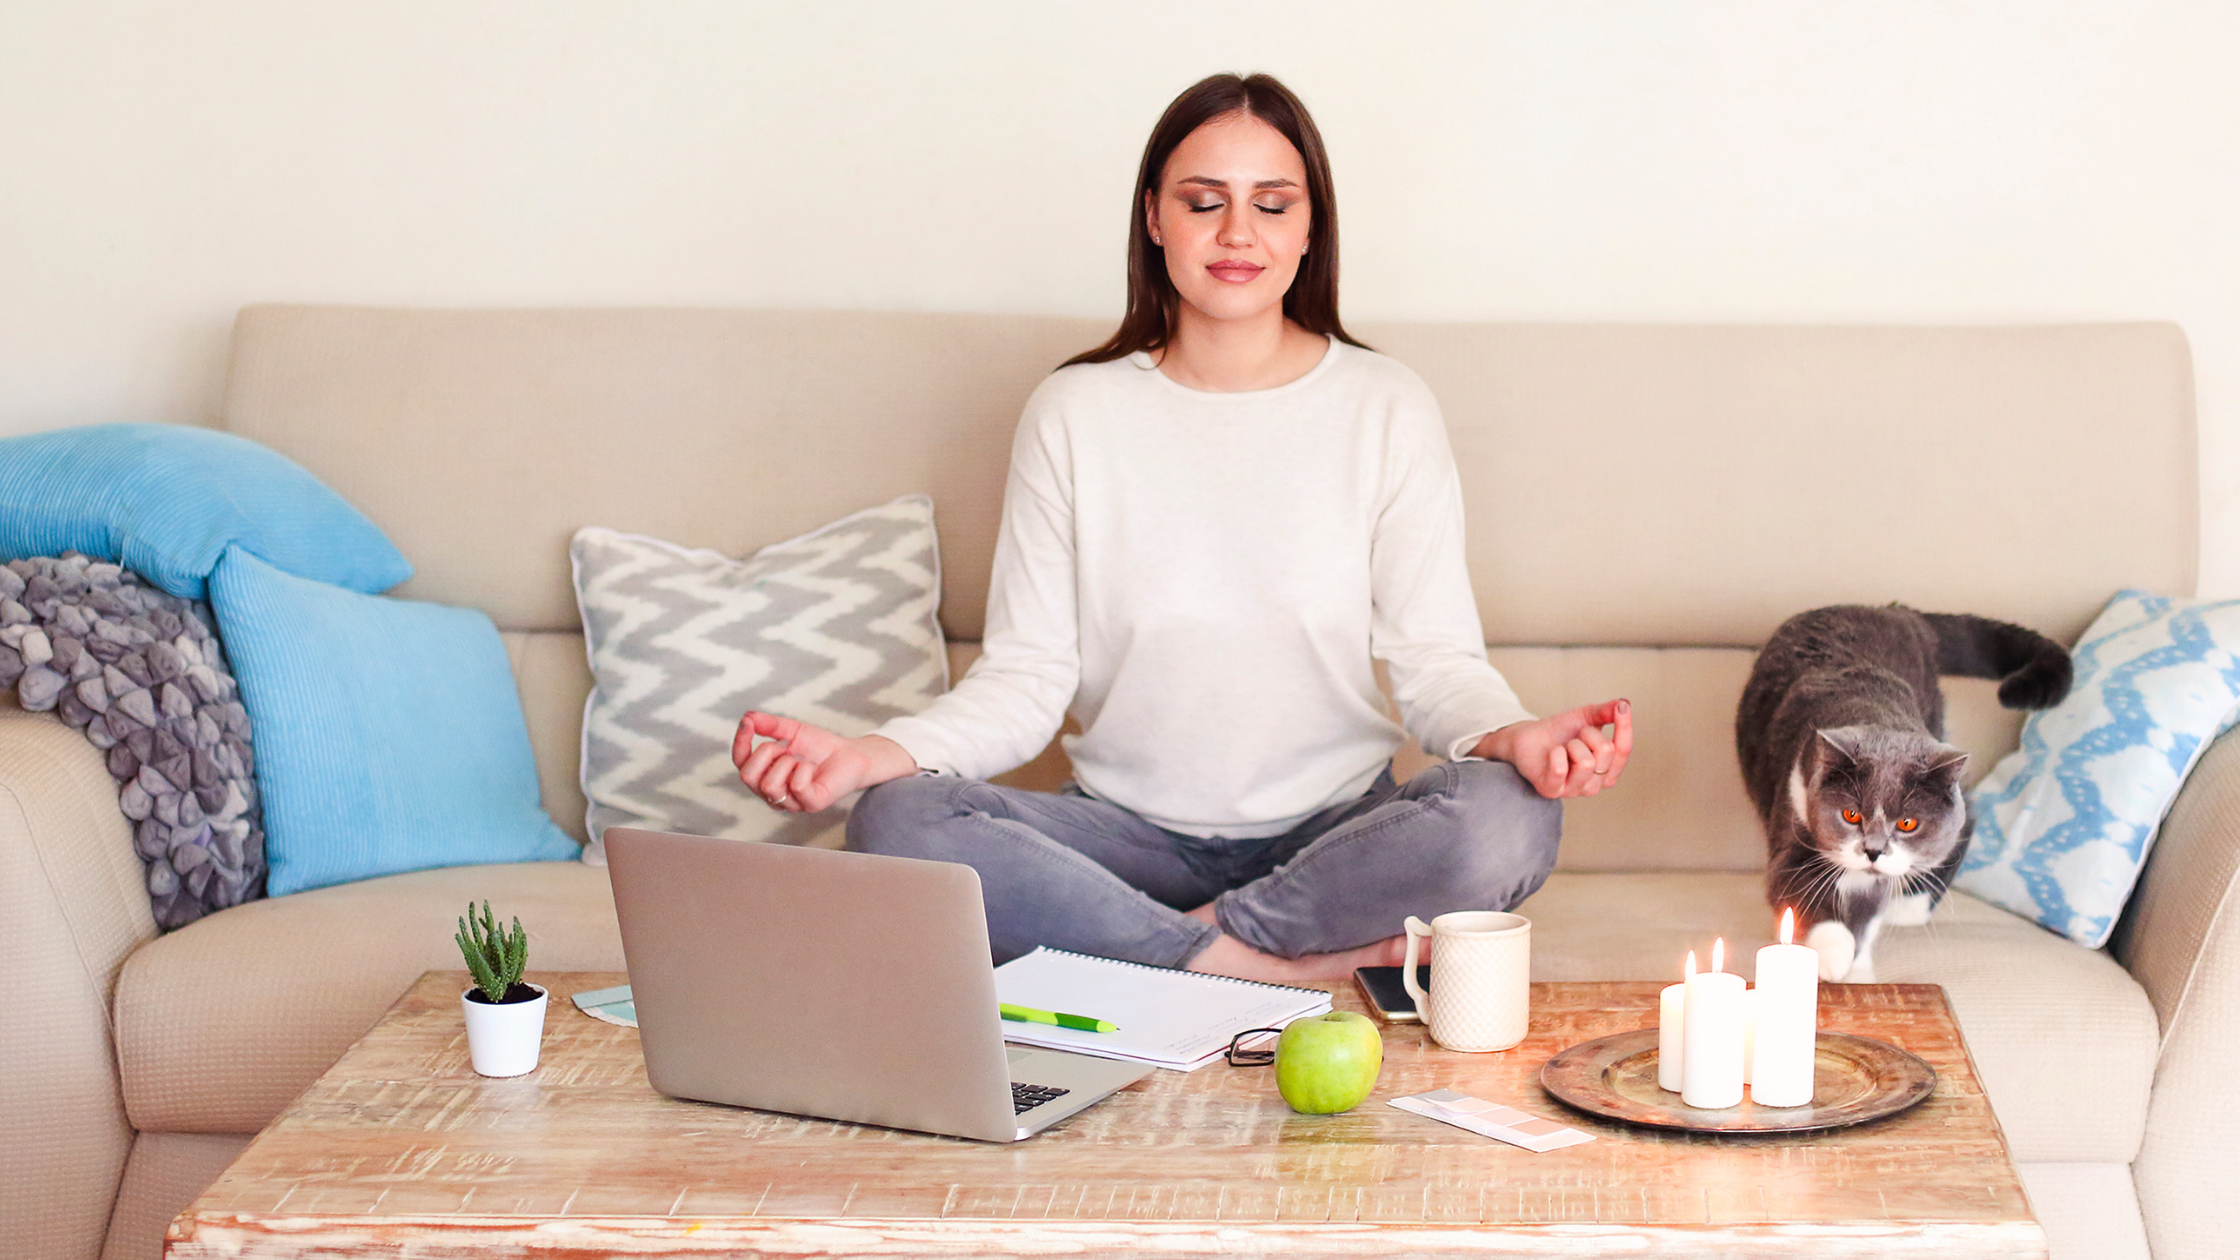 Best Meditation Apps To Help You Keep Calm During ACrisis